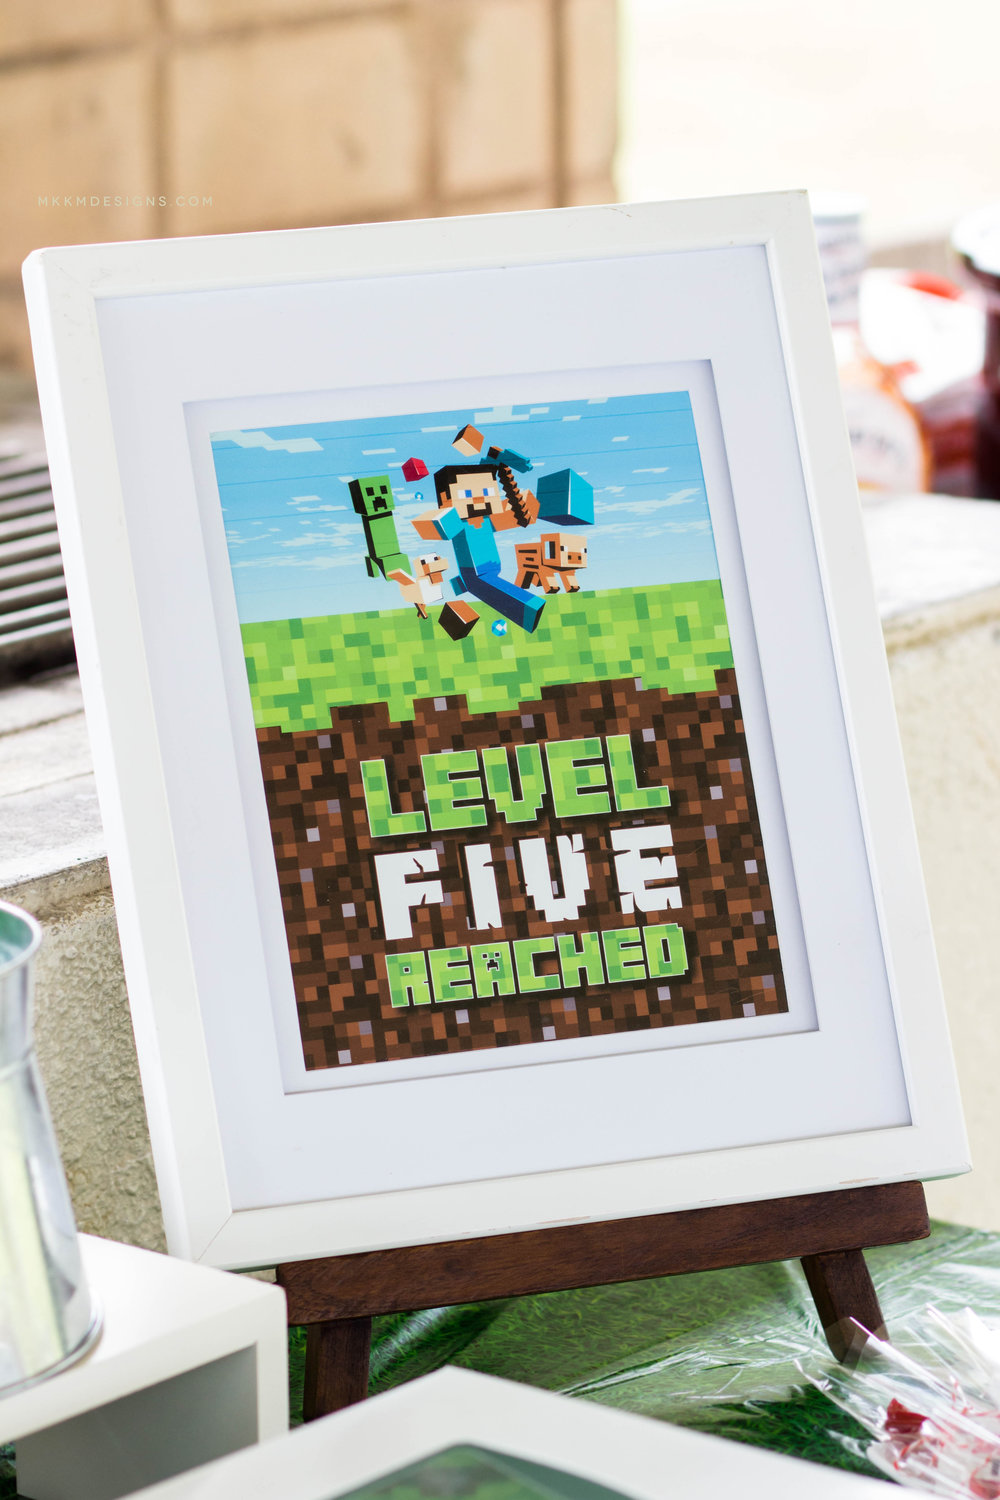 Level Five Reached Minecraft sign. Get your own custom sign in the MKKM shop.